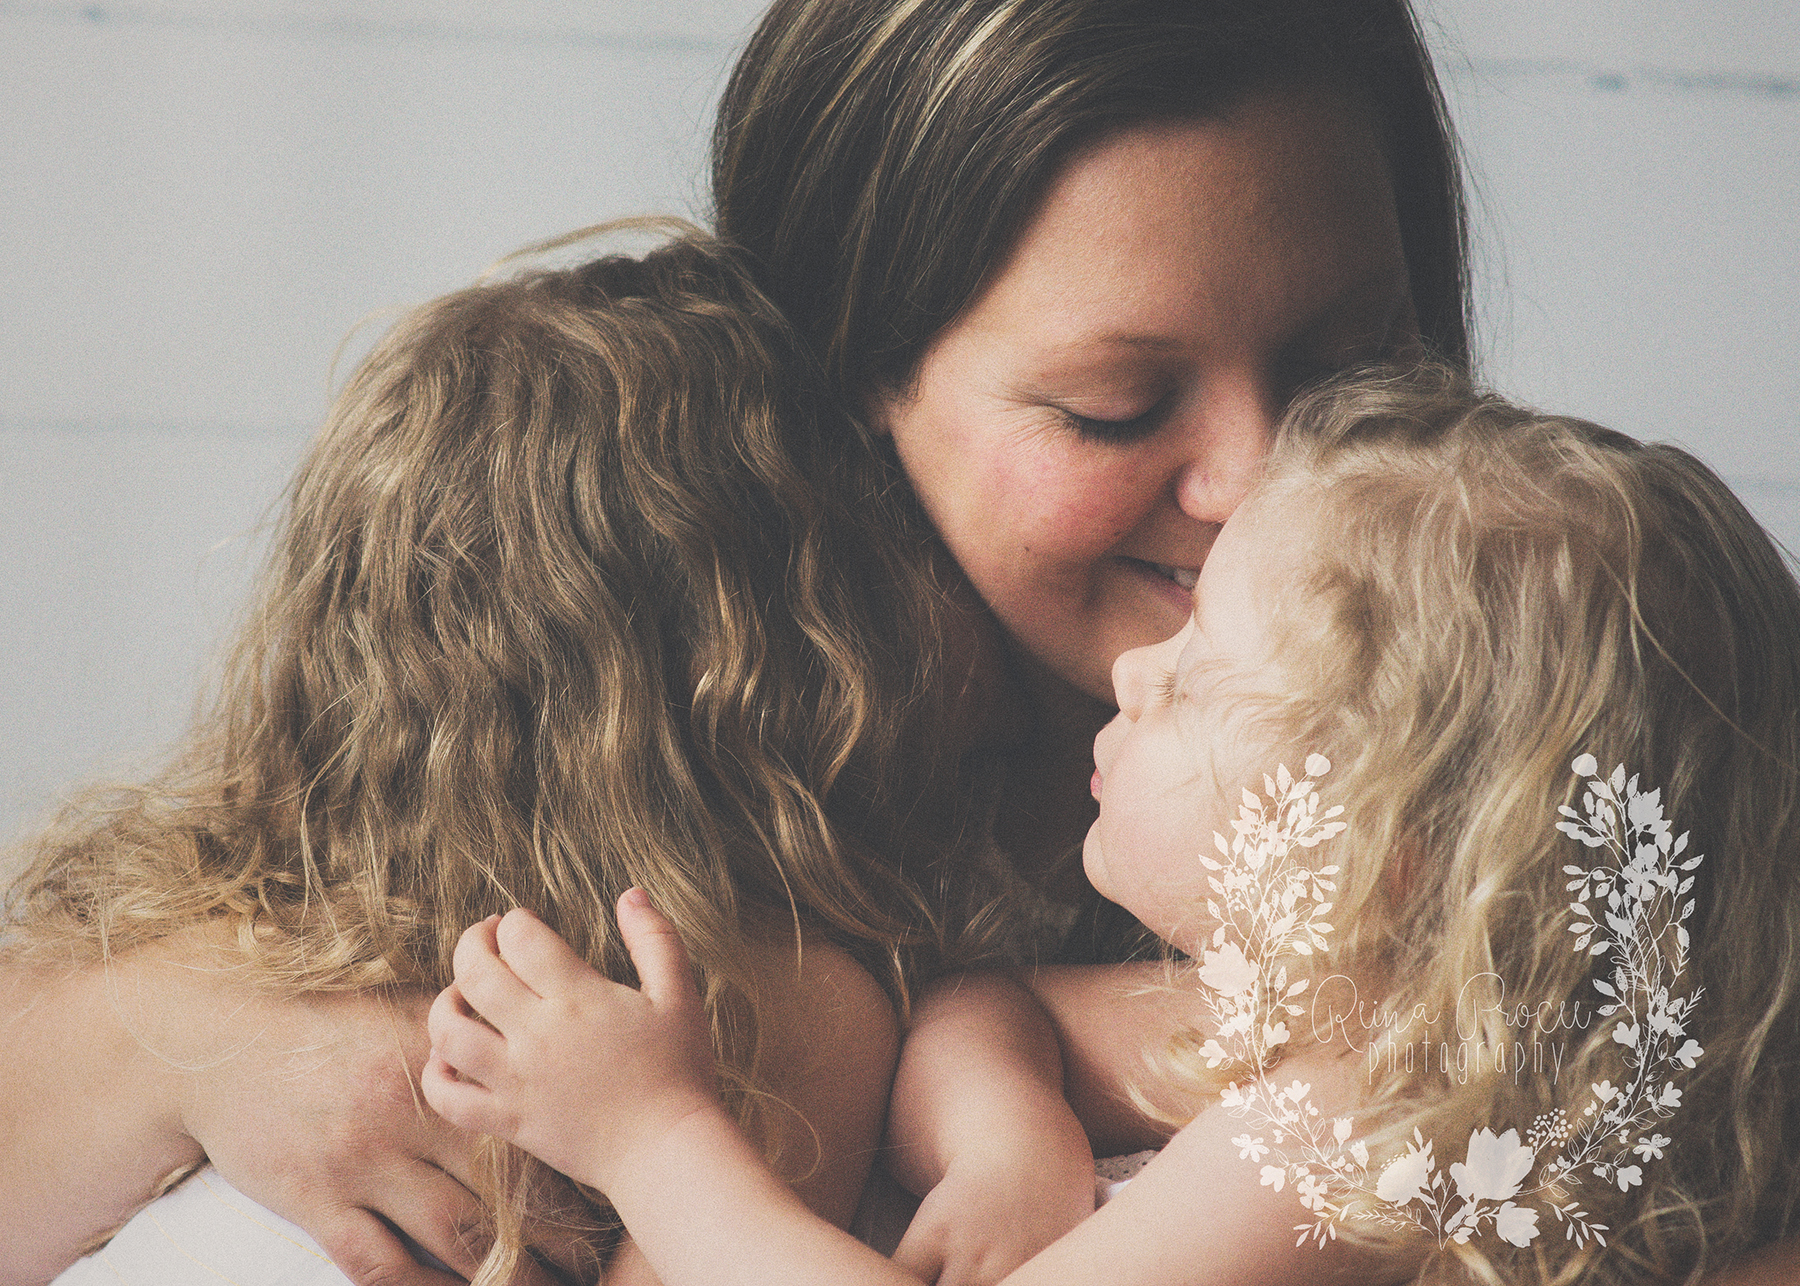 mother-child-love-family-portraits-montreal-photographer09.png